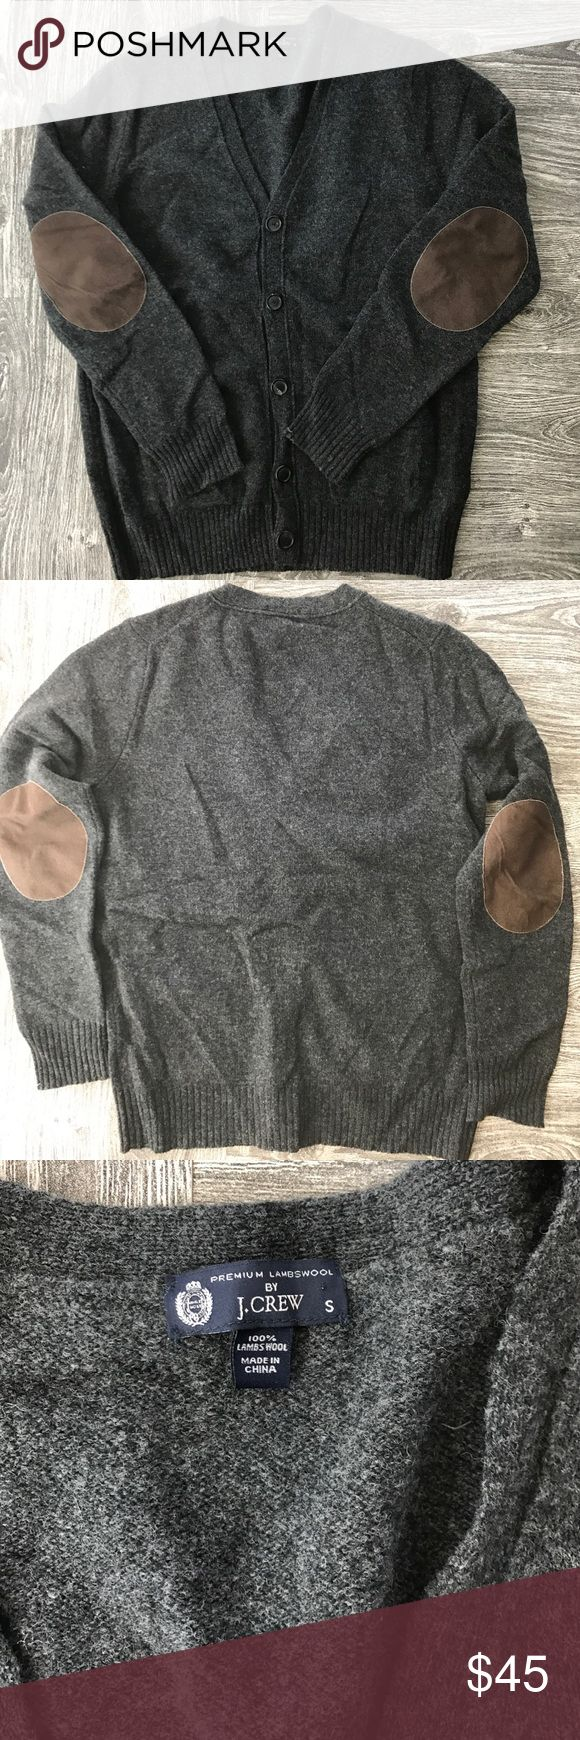 HPMen's J. Crew cardigan sweater small Charcoal gray sweater with brown suede elbow patches. Like new! J. Crew Sweaters Cardigan